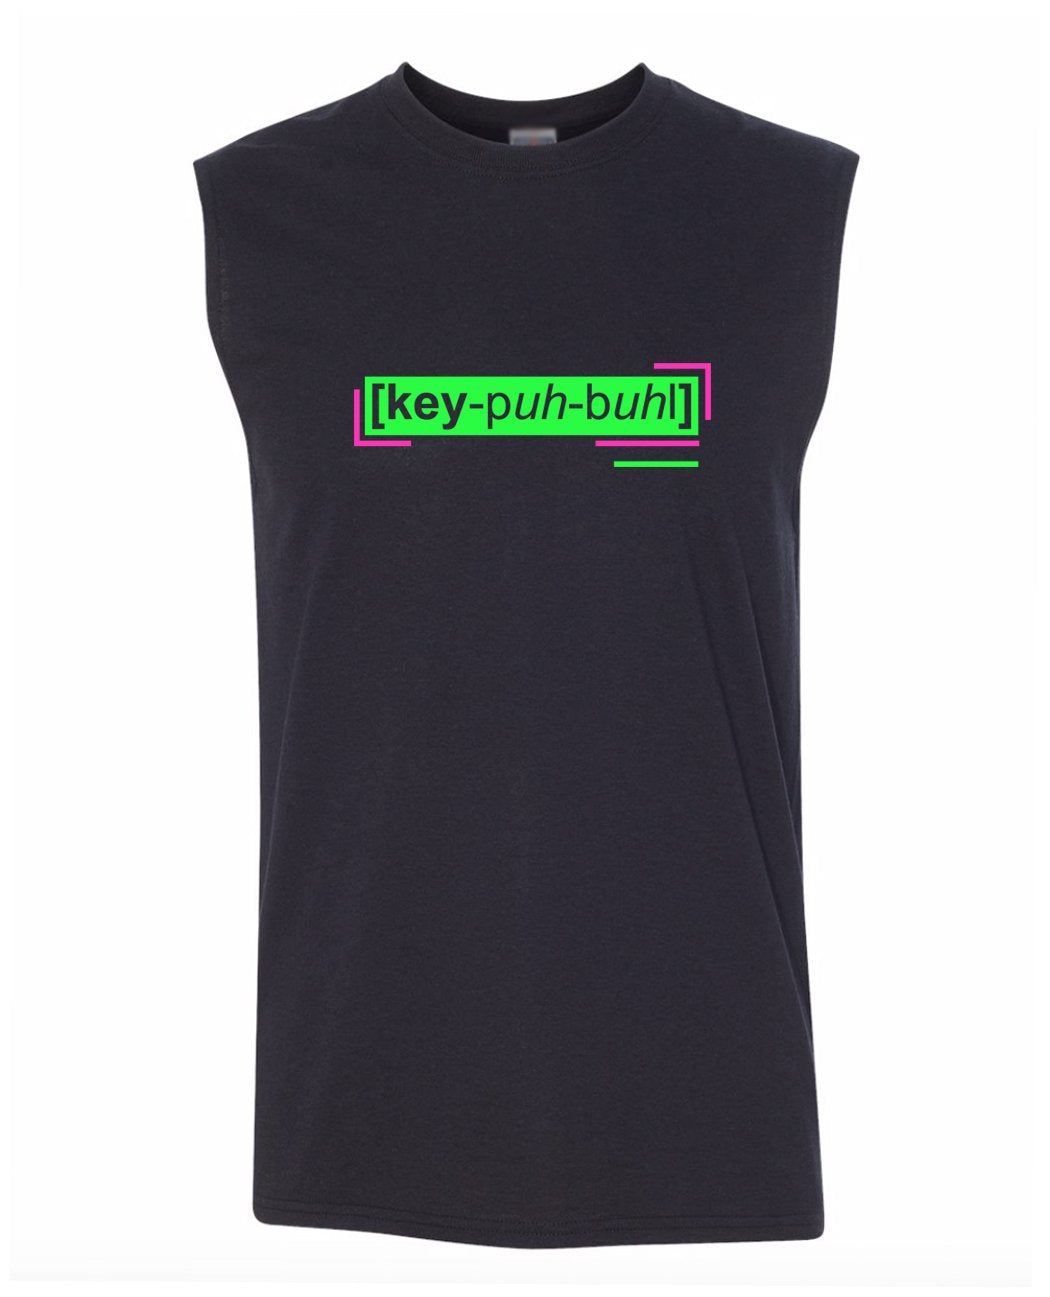 florescent green capable men's sleeveless t shirt tank top